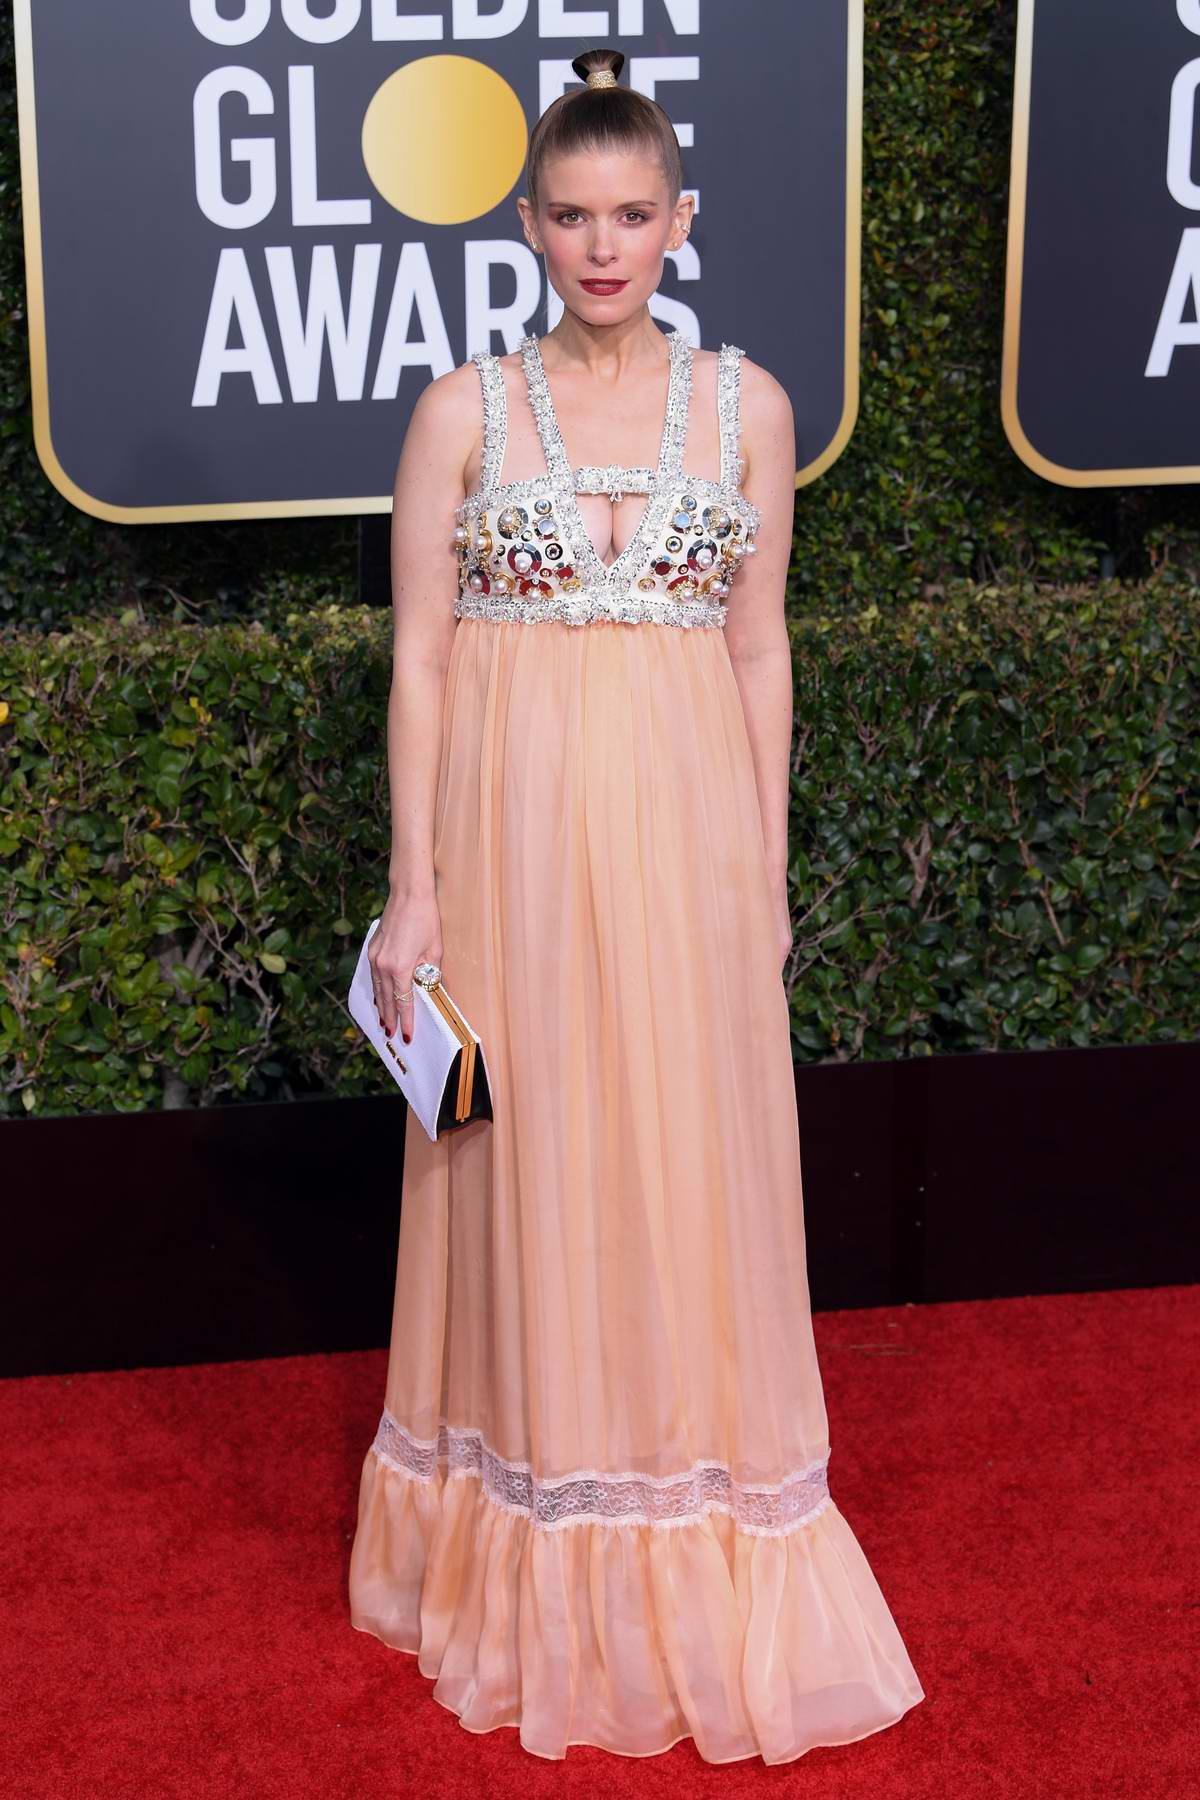 Kate Mara attends the 76th Annual Golden Globe Awards held at The Beverly Hilton Hotel in Los Angeles, California